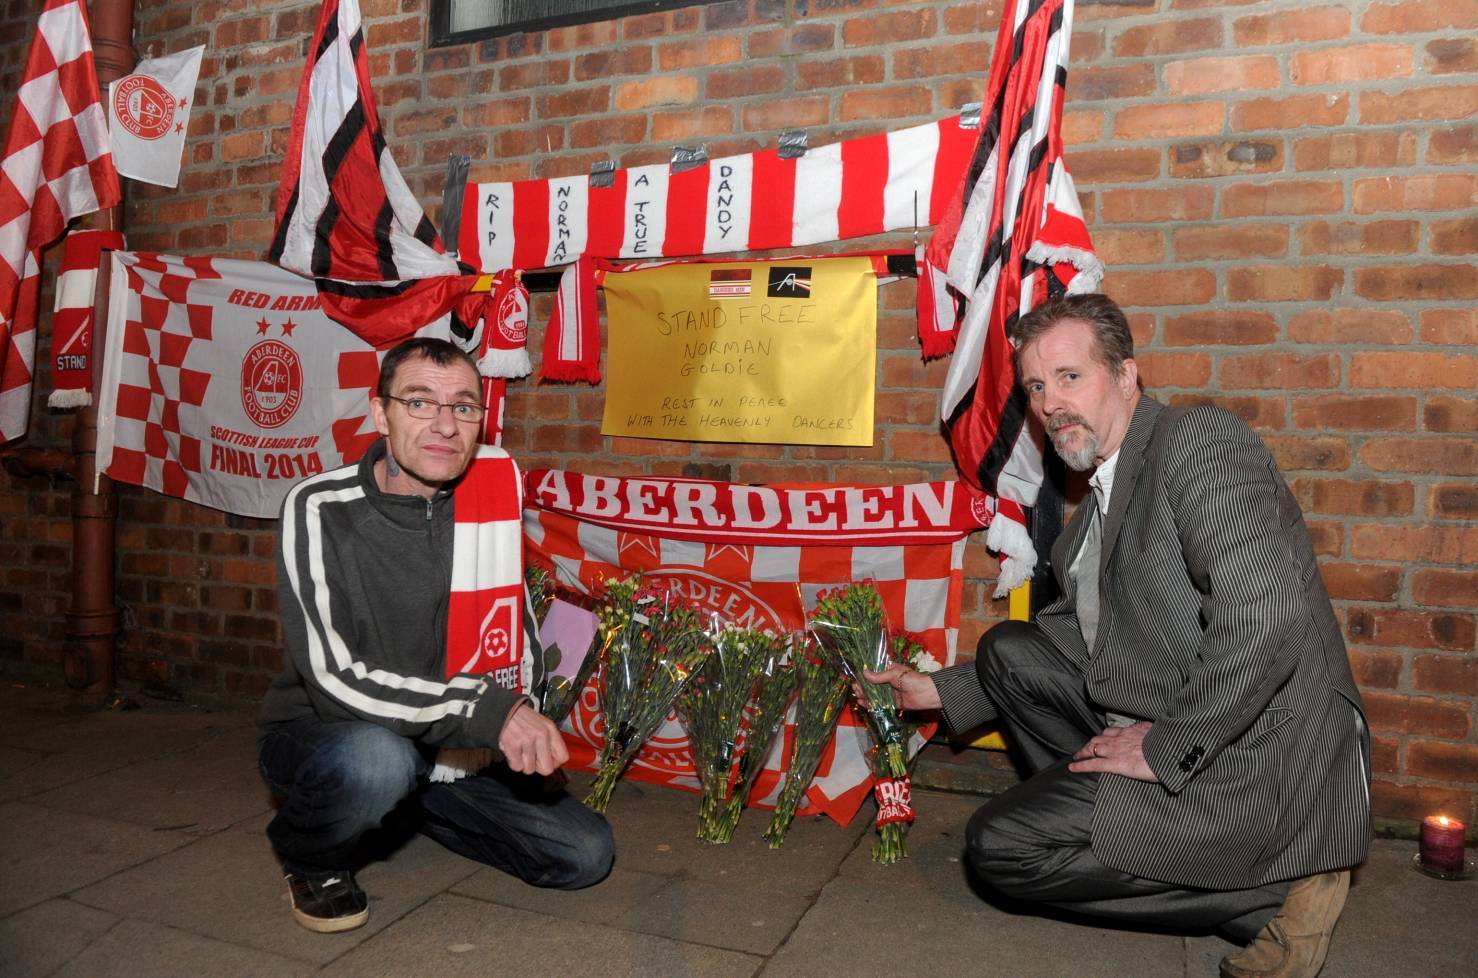 Dons fans Leslie Johns, left, and Fin Hall lay flowers and scarves at Pittodrie in memory of Dons fan Norman Goldie